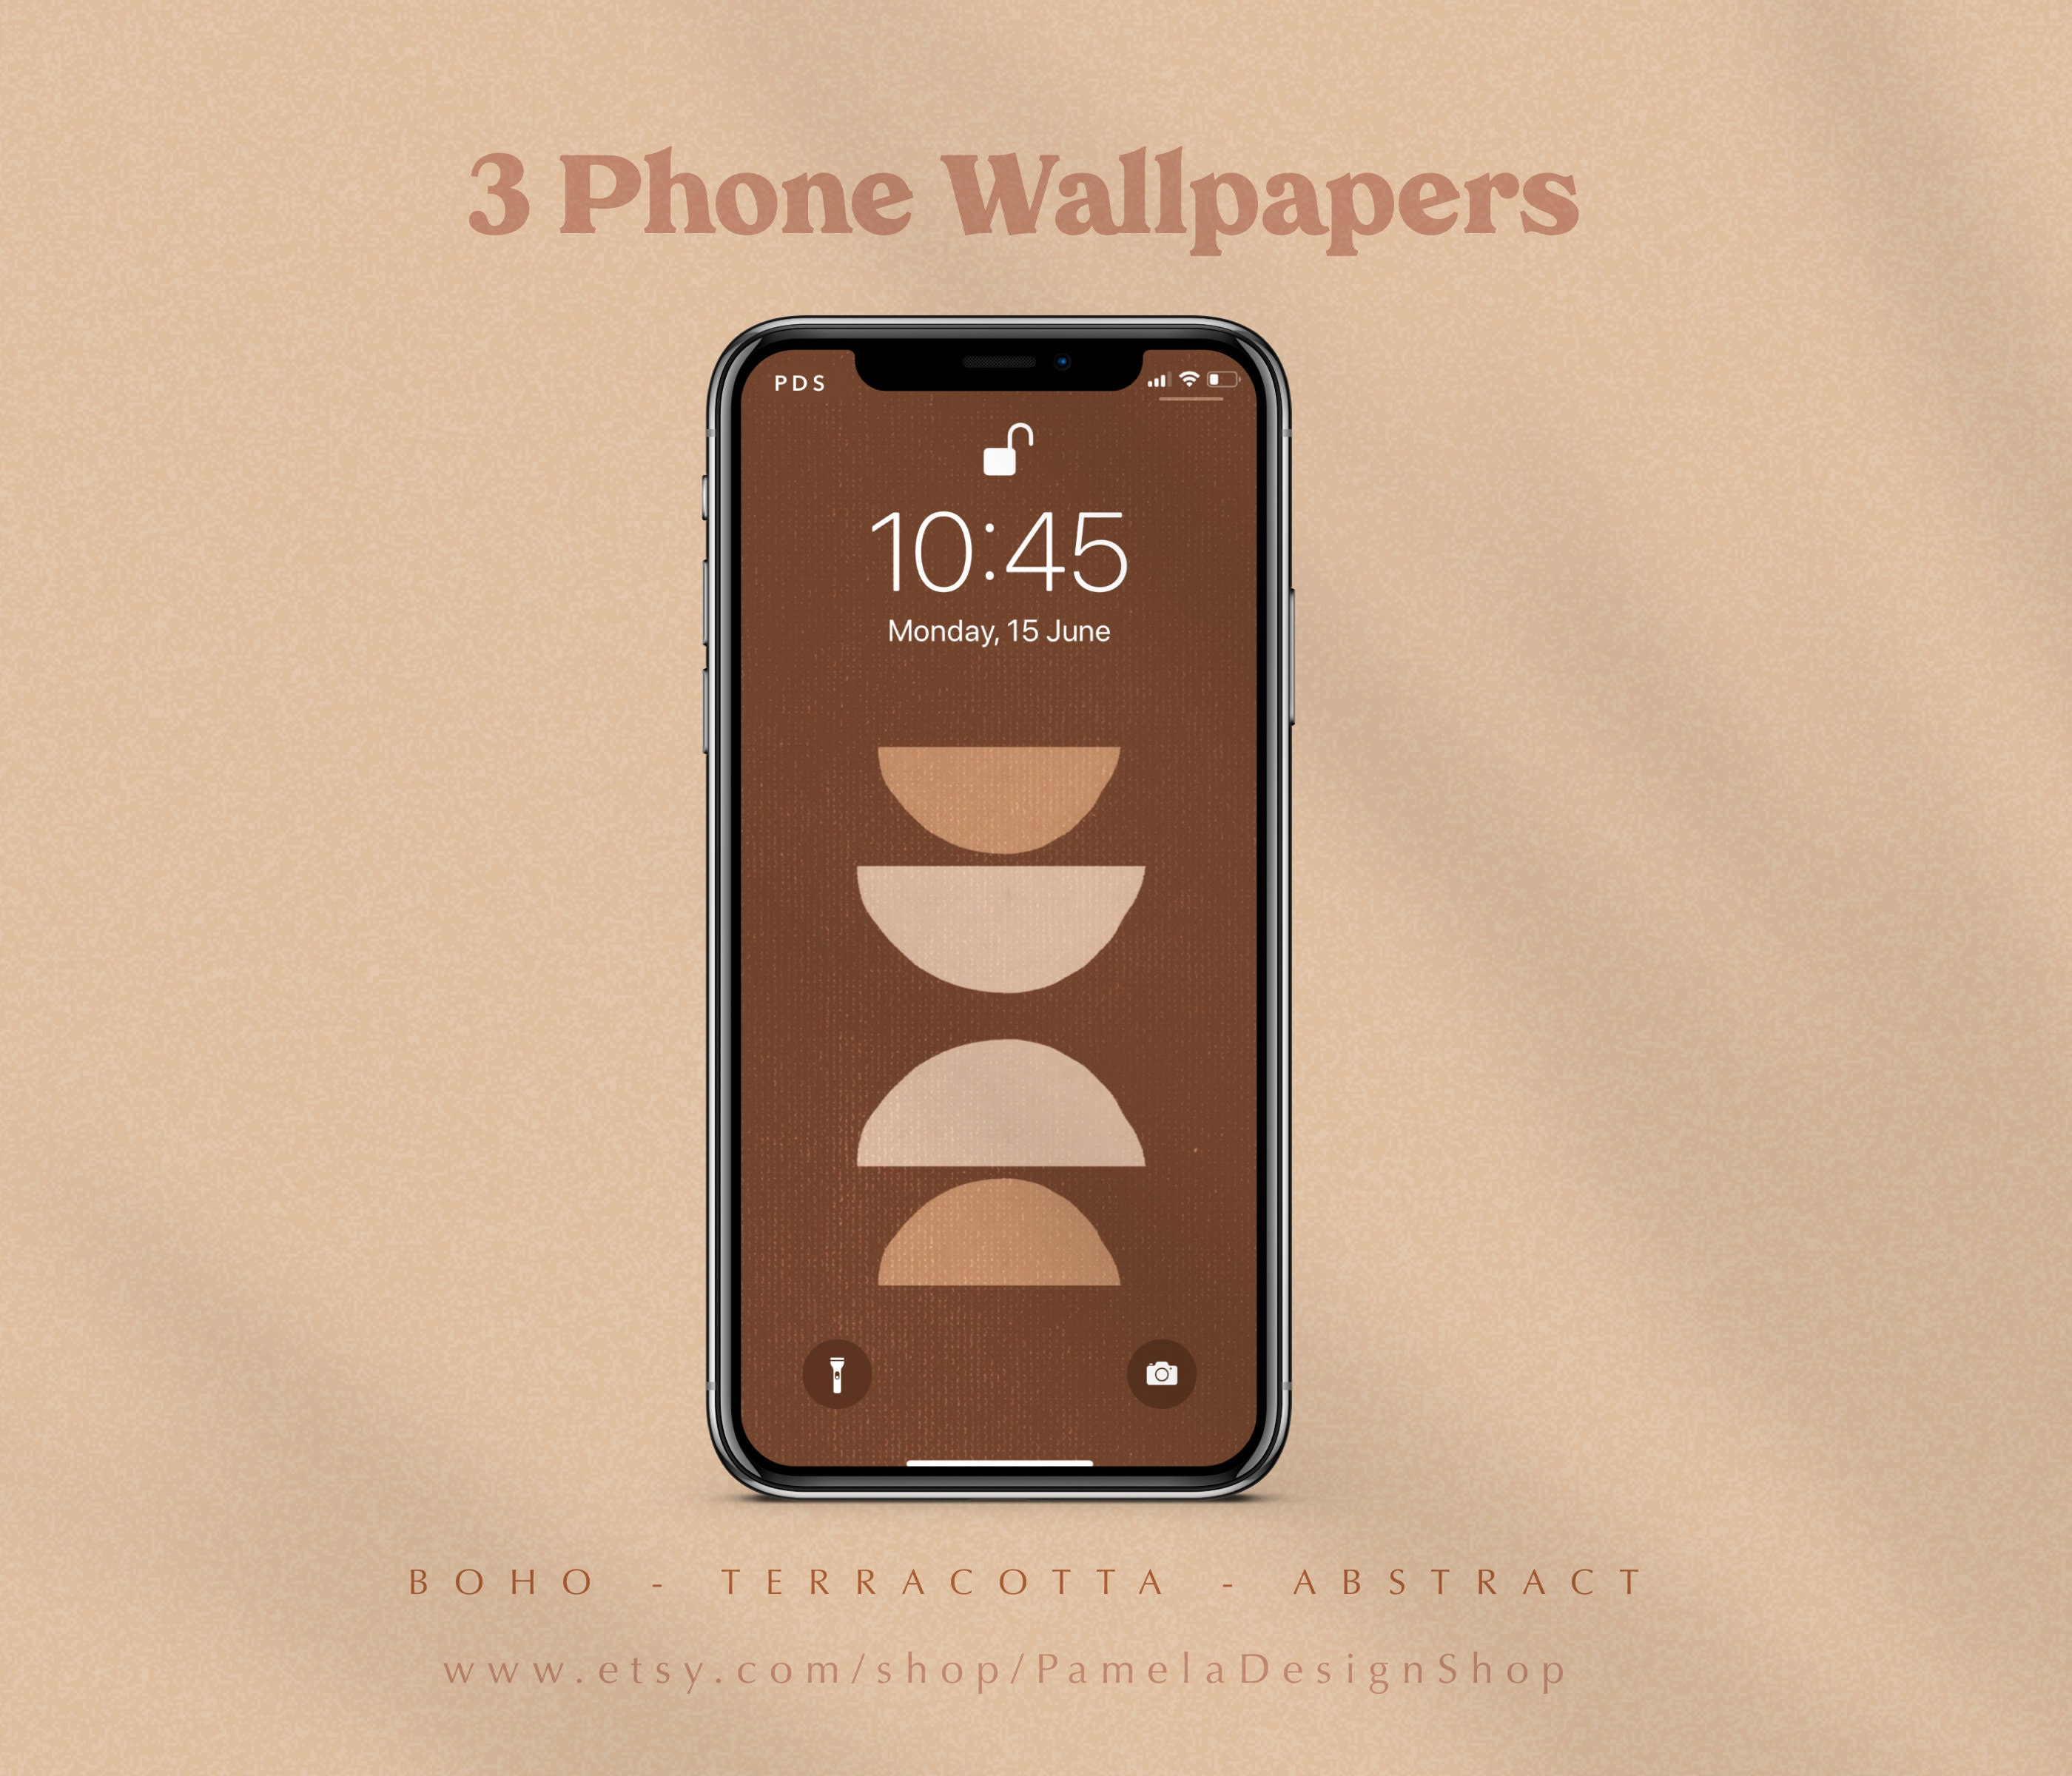 3 Iphone Wallpapers Design Abstract Shapes Terracotta Etsy